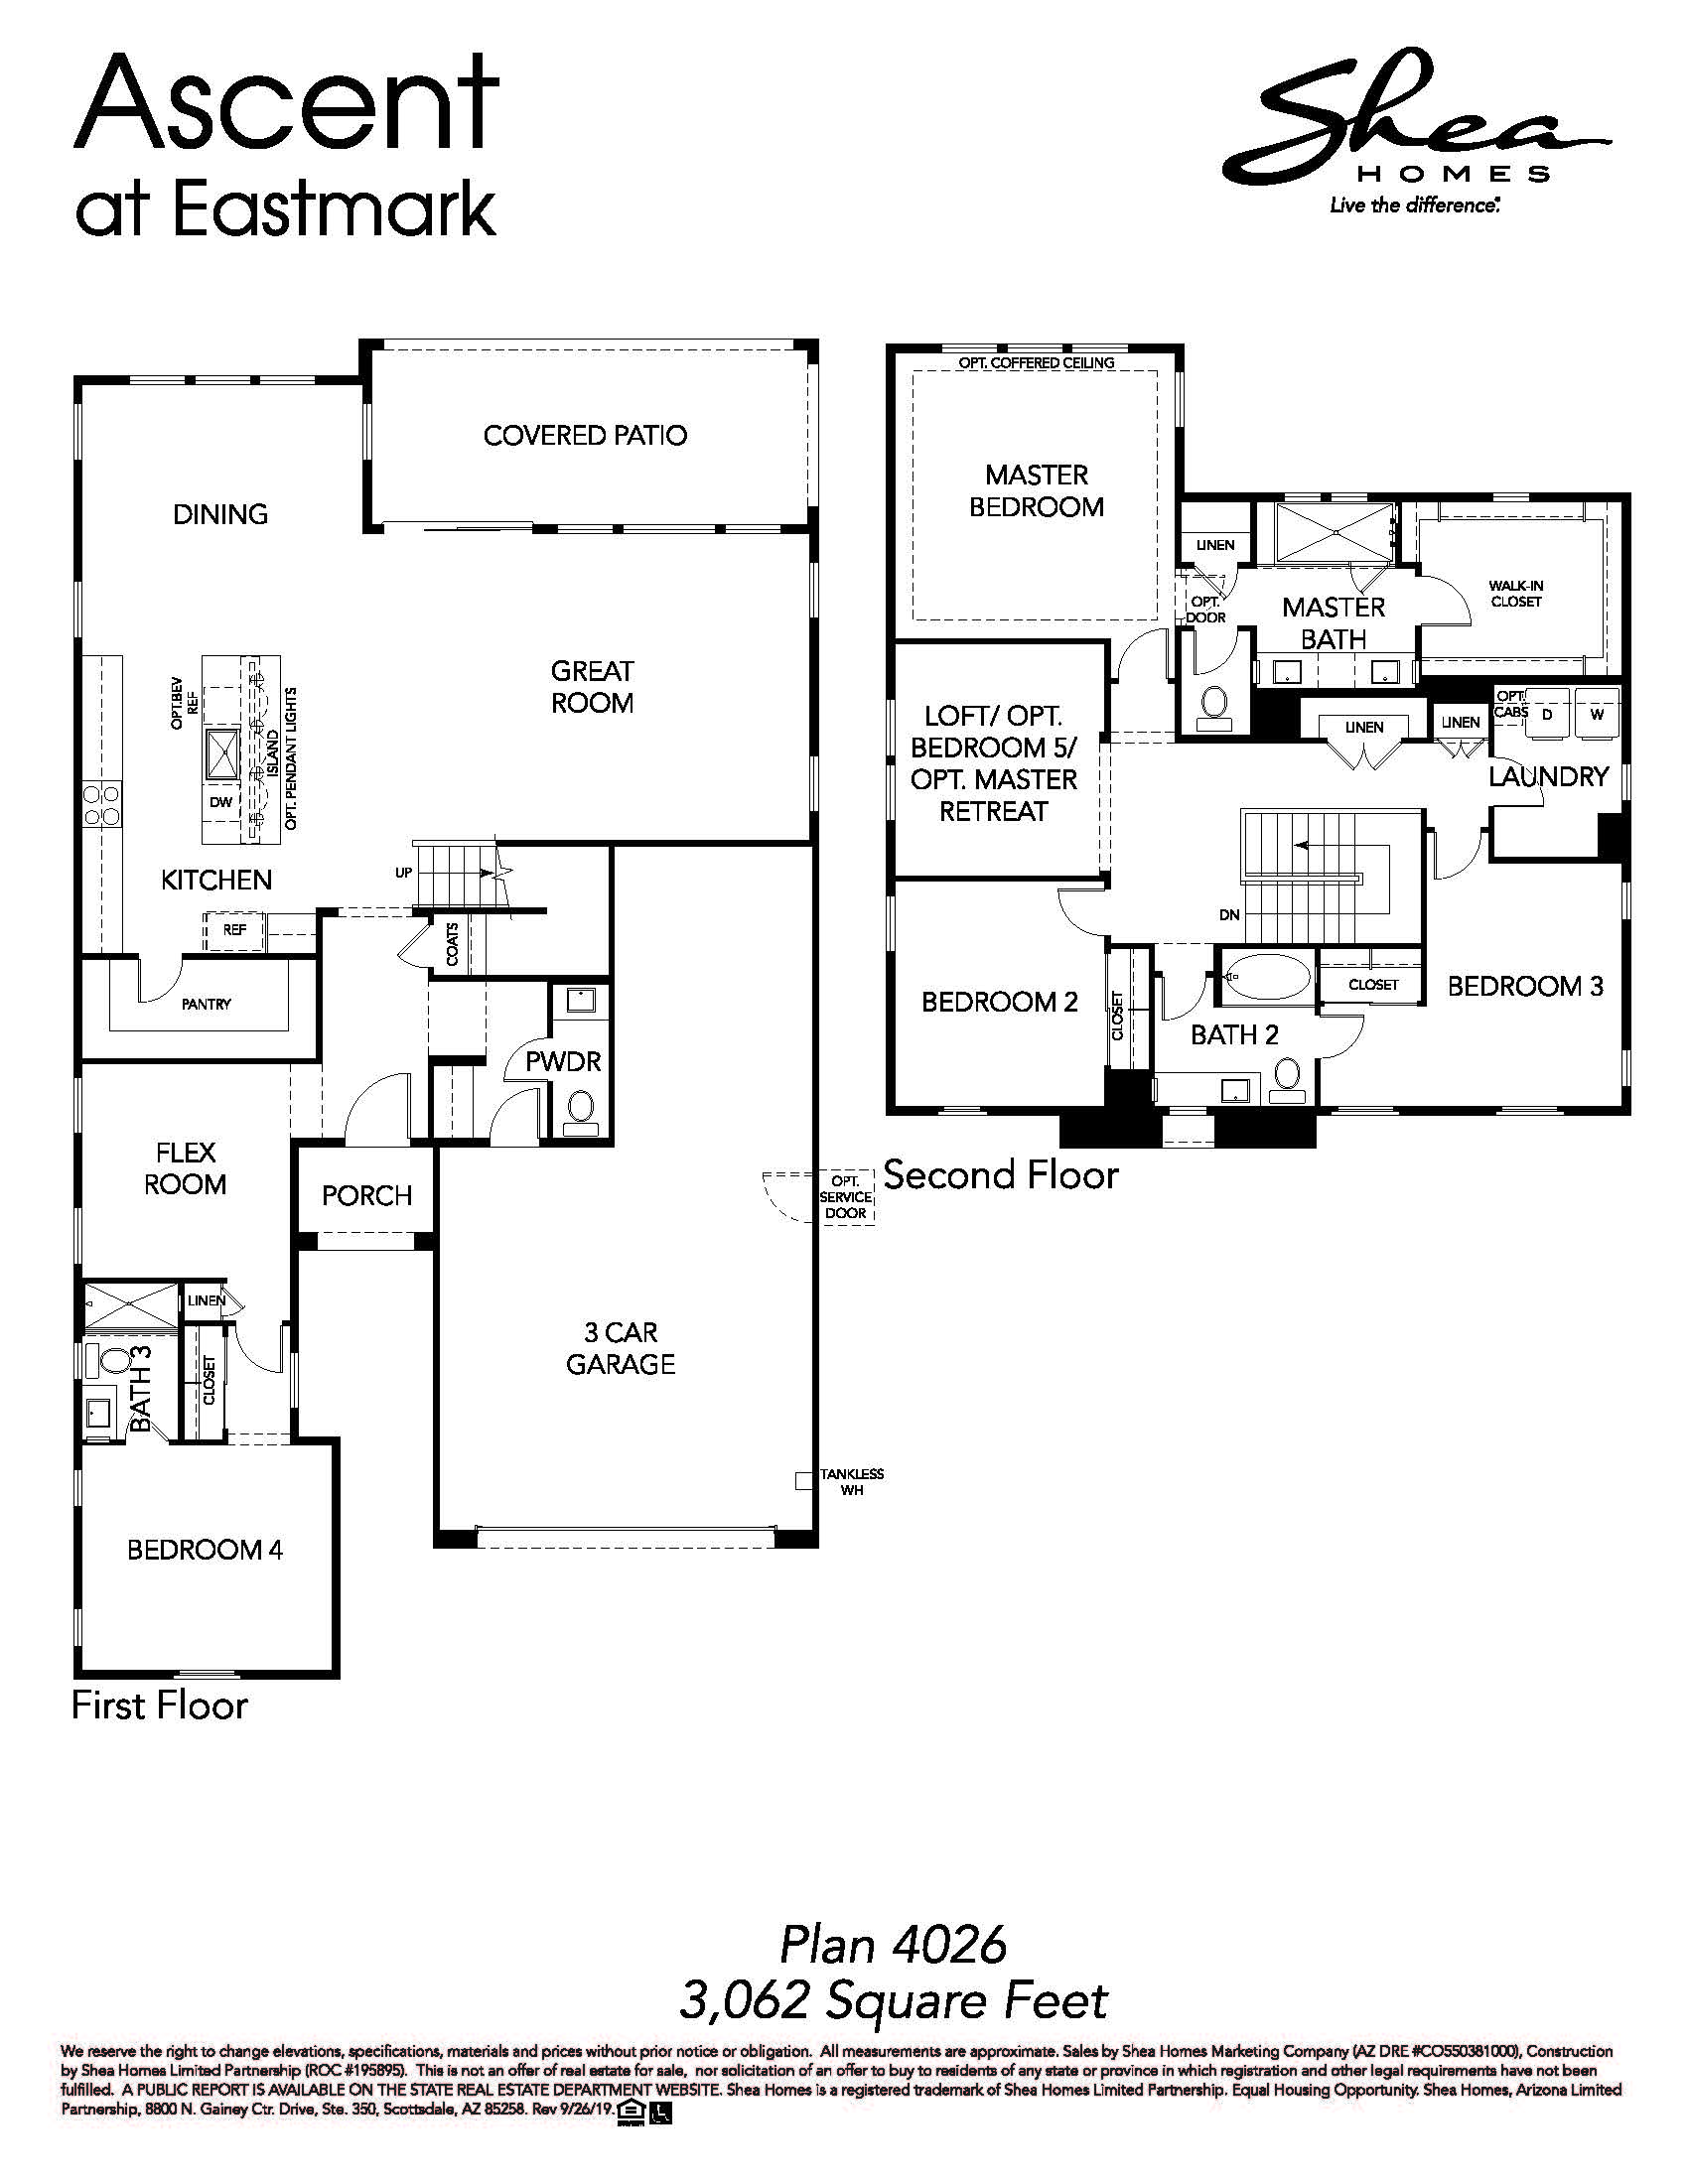 Plan 4026 Floorplan